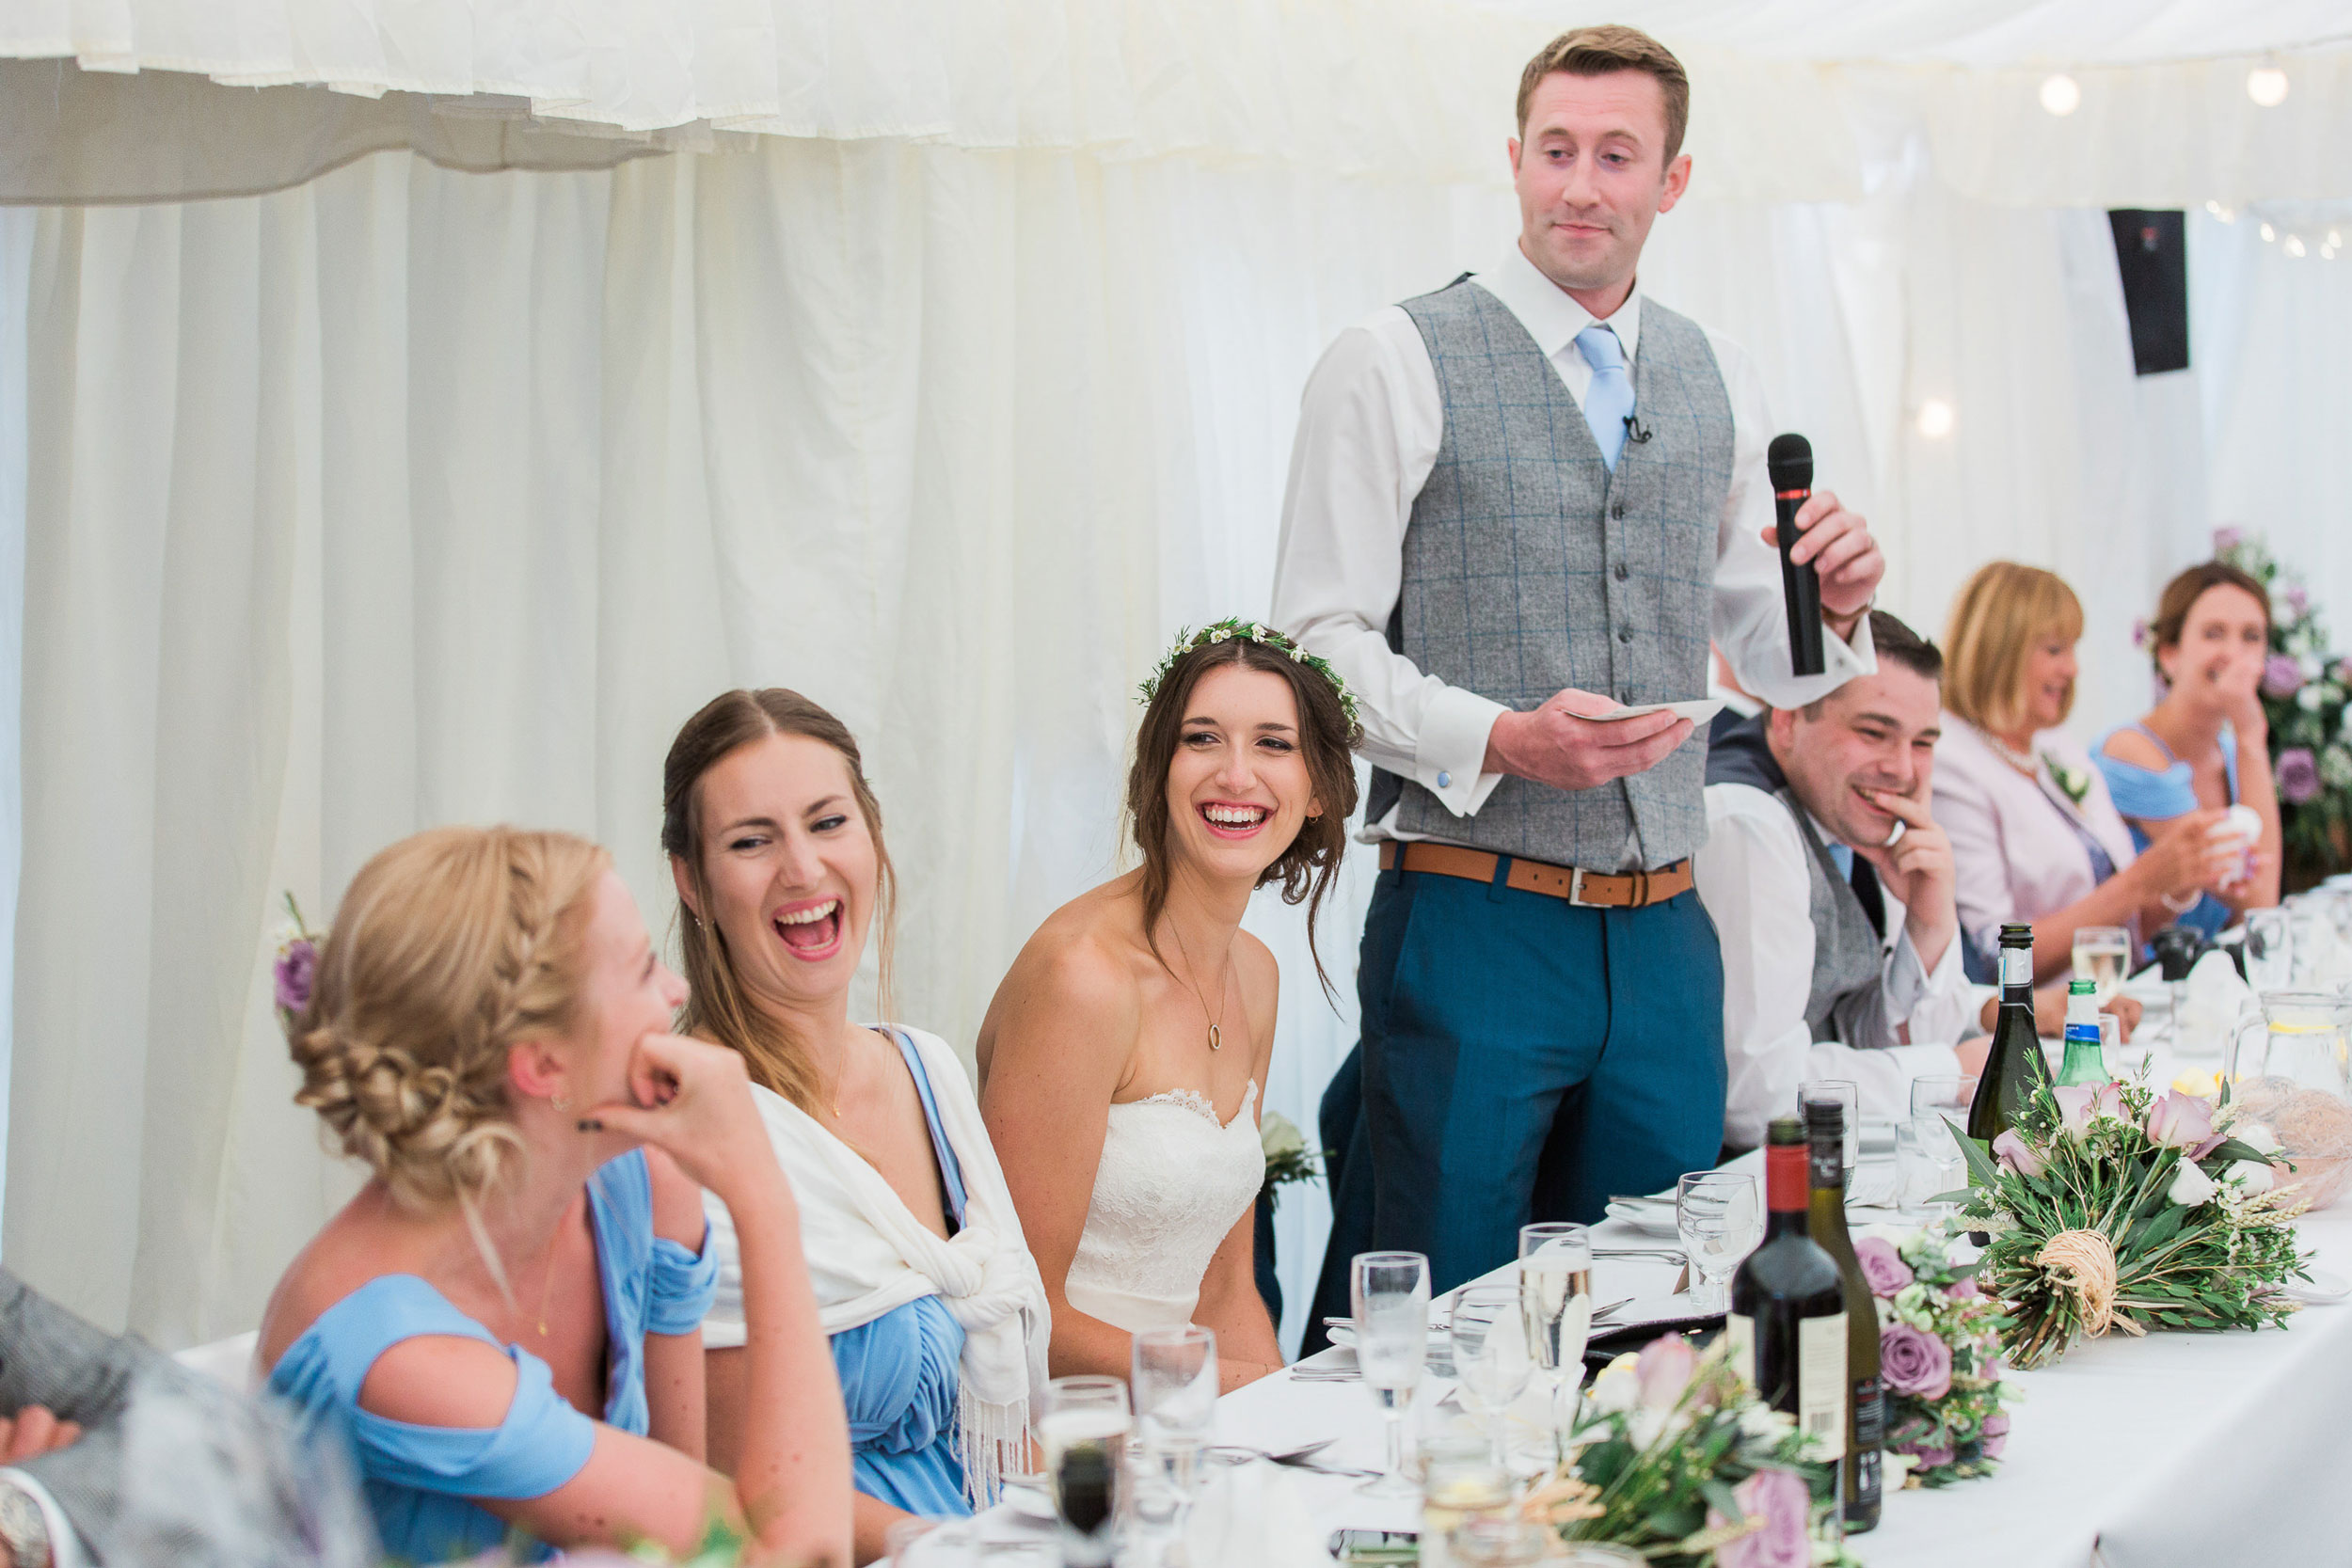 duncan-mein-photography-wedding-photographer-bristol-portfolio-103